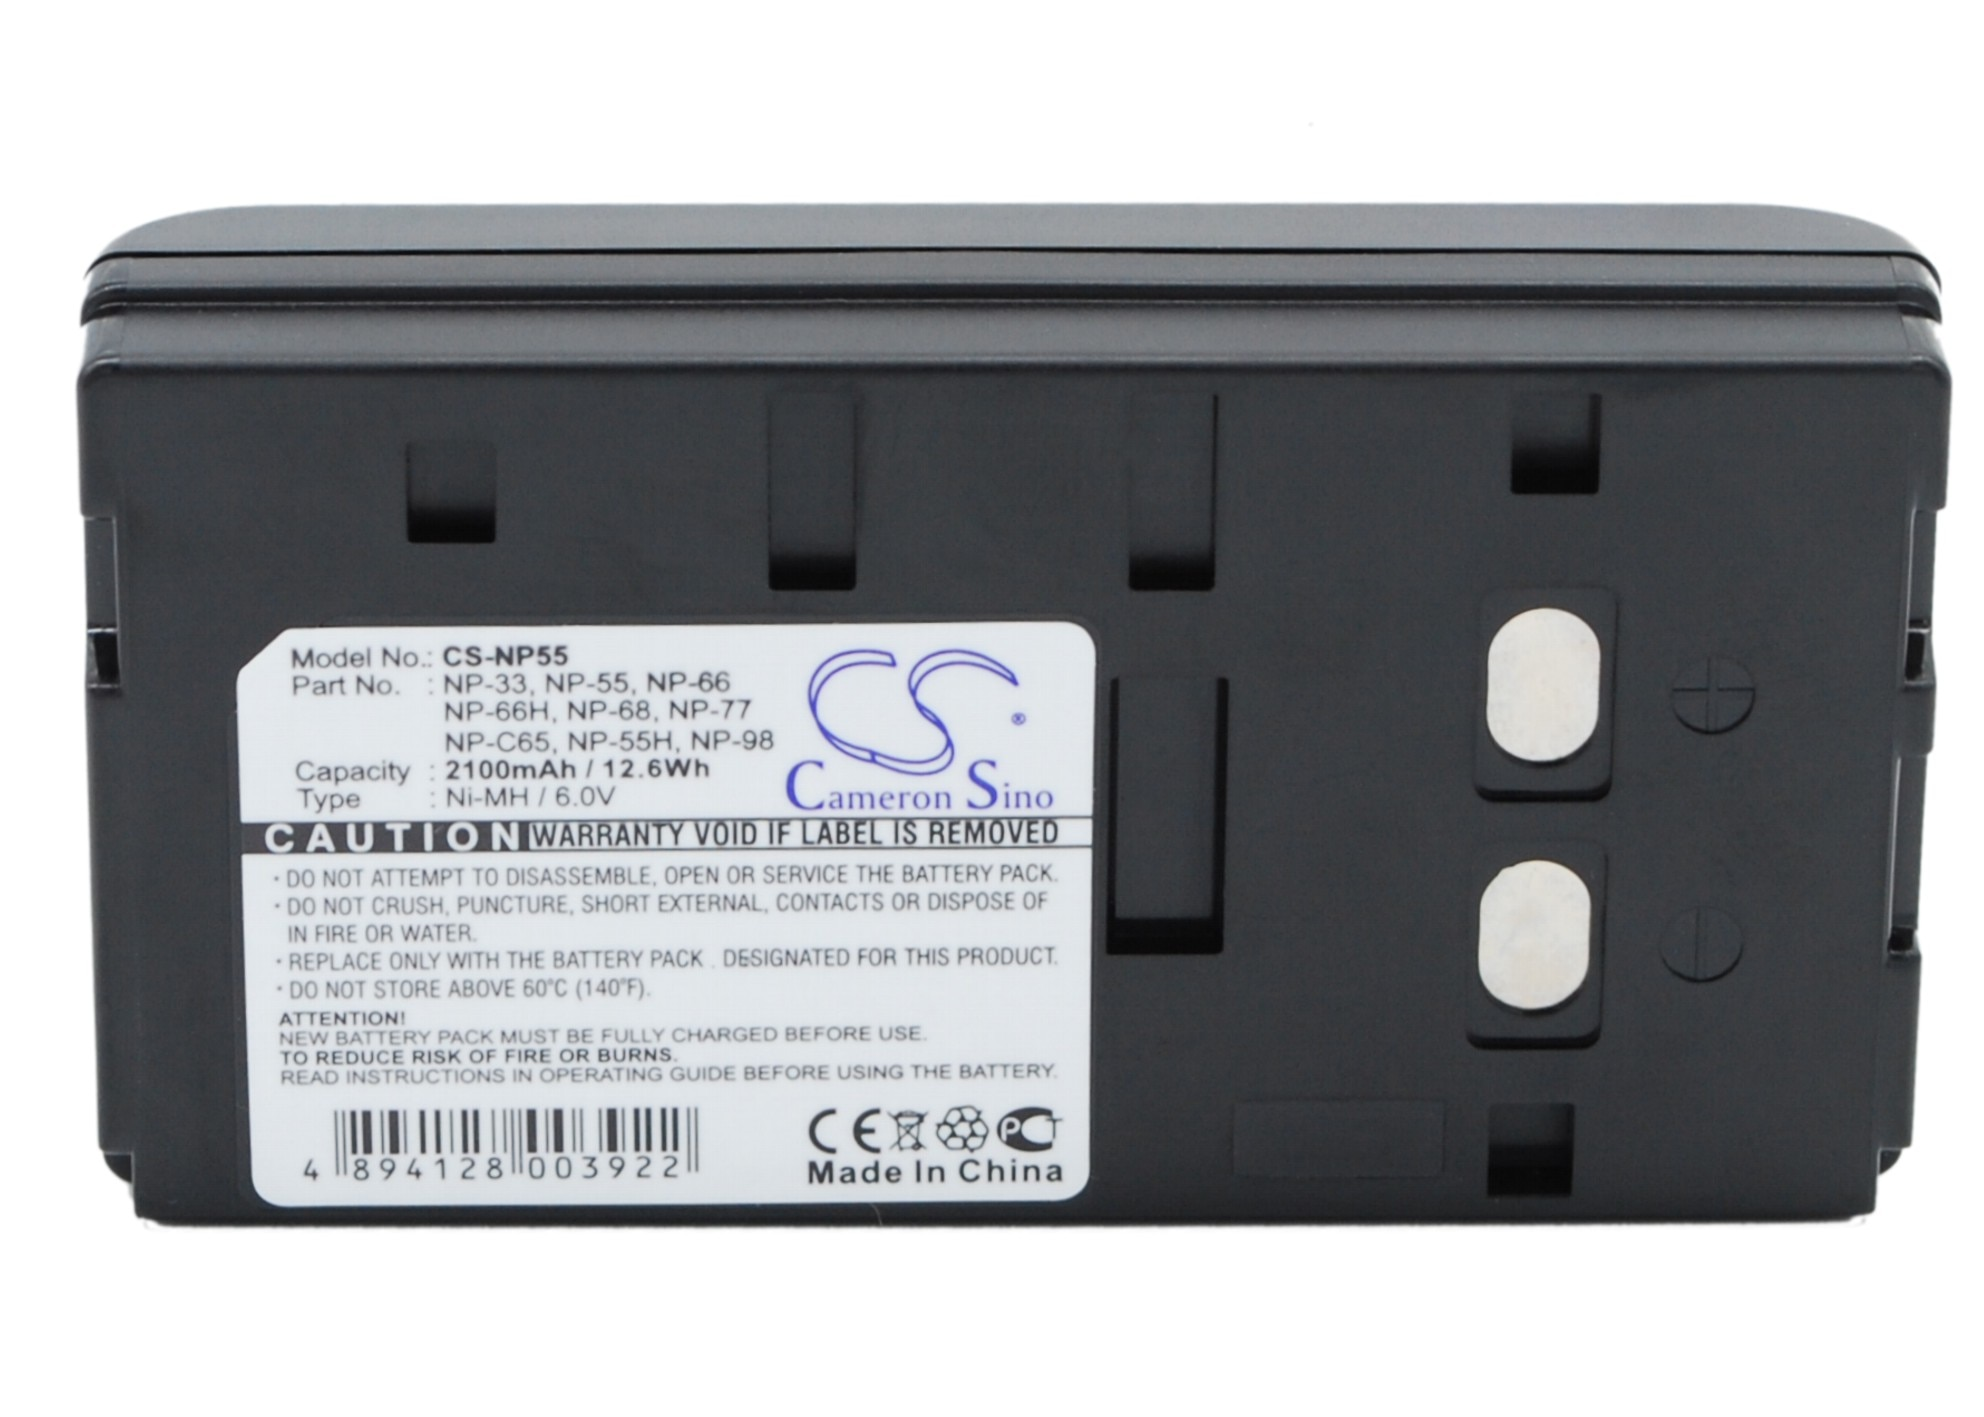 Cameron Sino NP-33 Battery For SONY CCD-20061,CCD-335E,CCD-35,CCD-366BR,CCD-380,CCD-390,CCD-400,CCD-50E,CCD-550,CCD-850,CCD-EB55